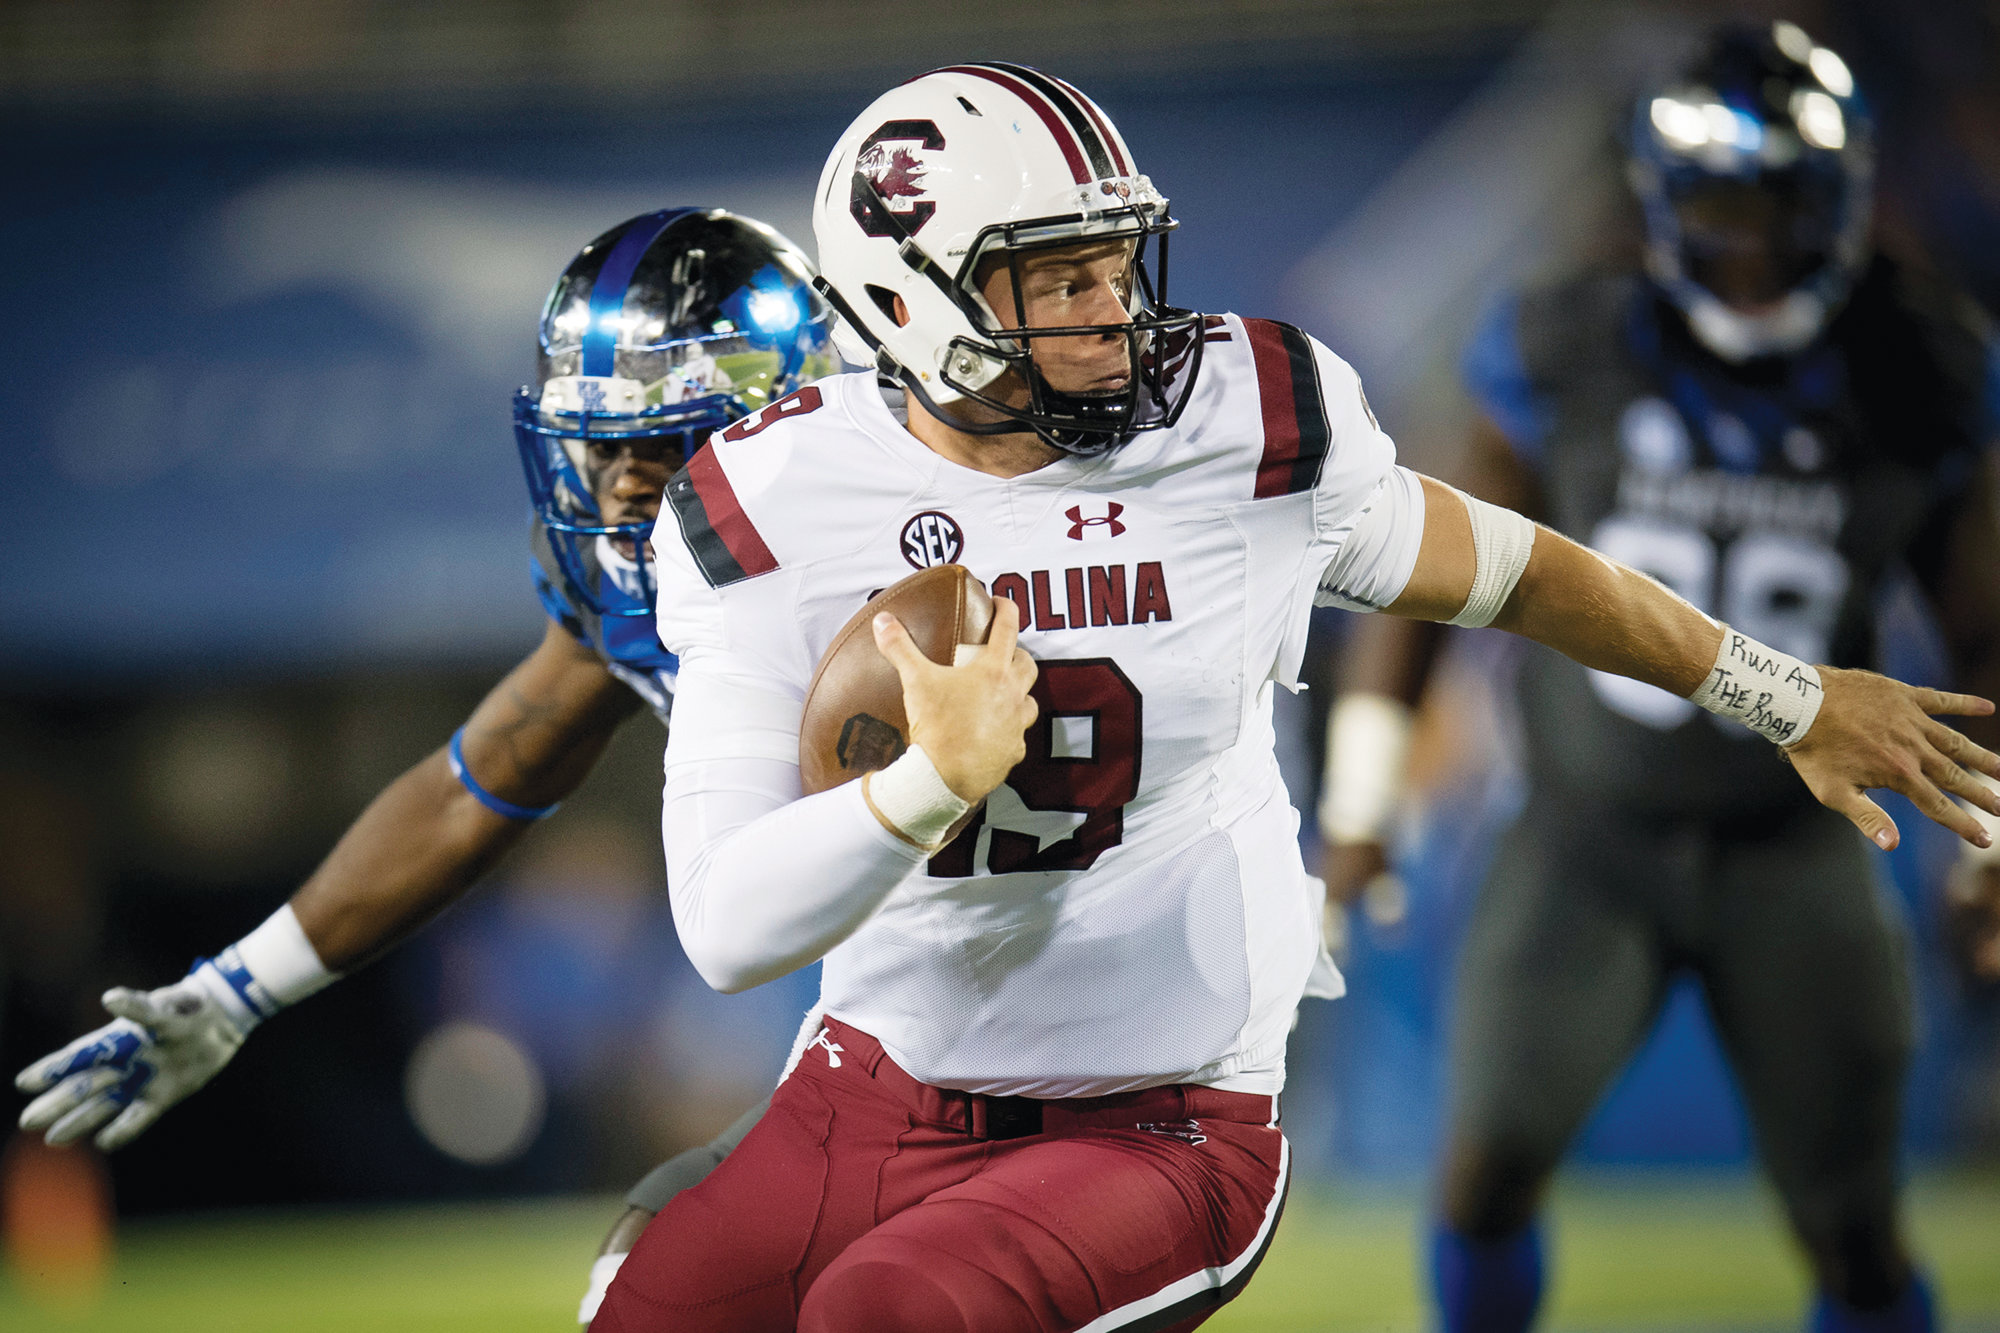 South Carolina head coach Will Muschamp expects Jake Bentley (19) to start at quarterback on Saturday against Texas A&M. Bentley missed last week's 37-35 victory over Missouri with an injury.